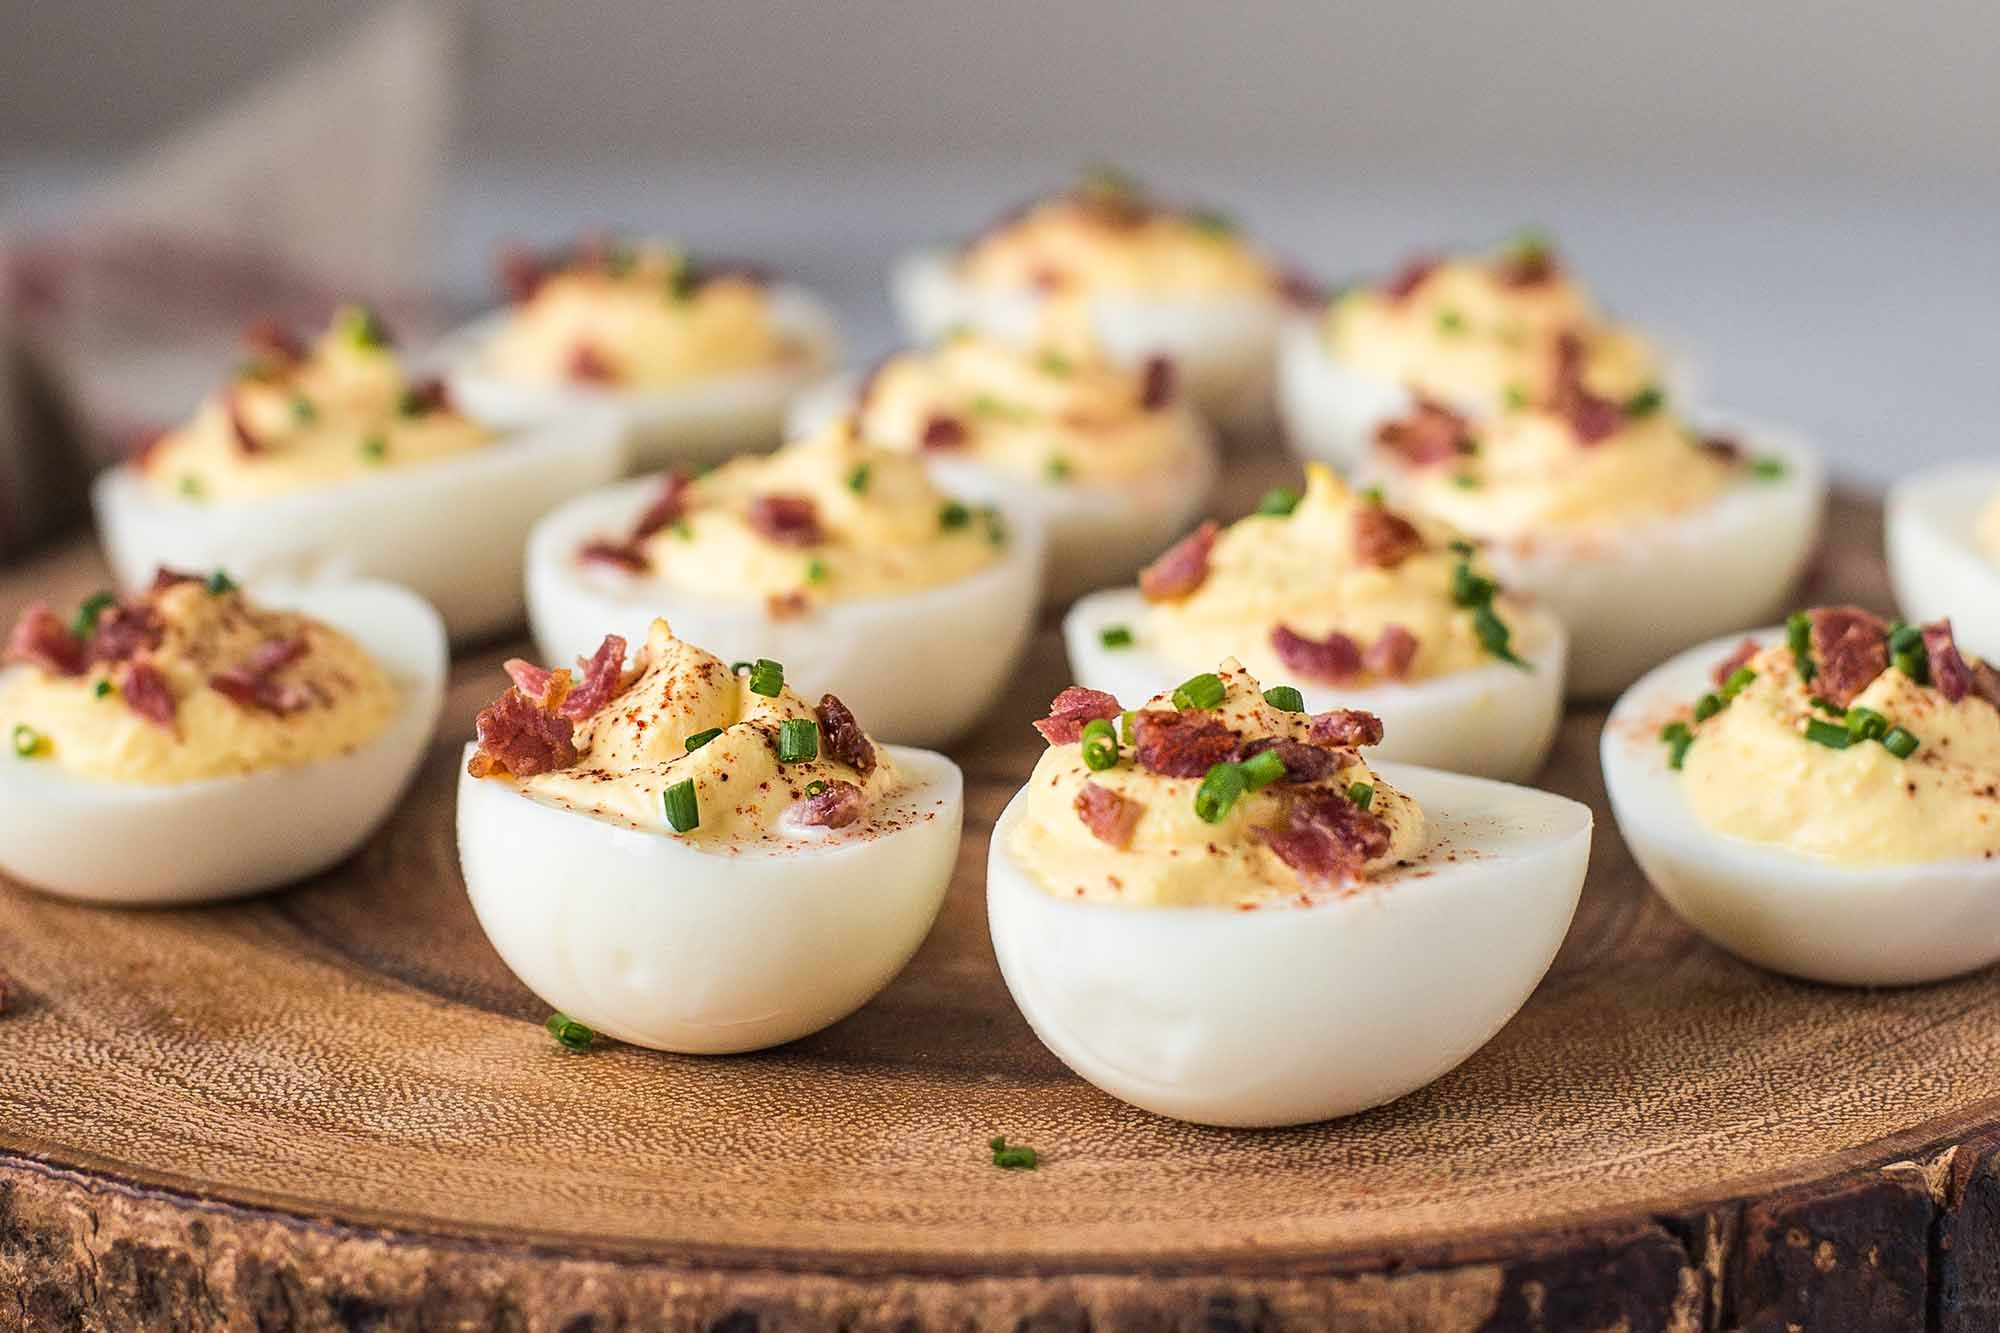 Sour Cream And Bacon Deviled Eggs Recipe Food In 2019 Deviled Eggs Recipe Deviled Eggs Bacon Deviled Eggs